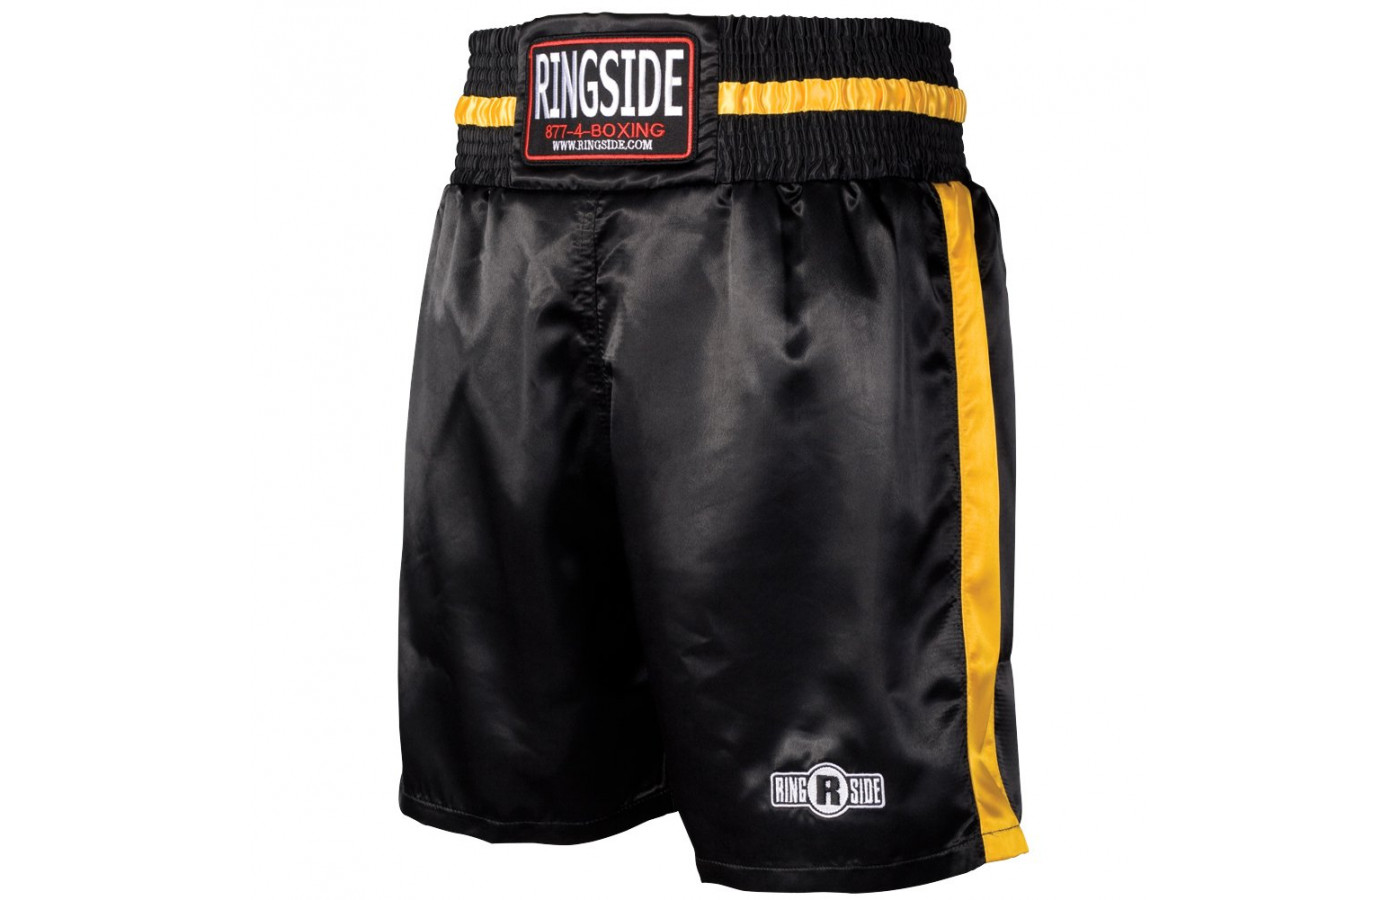 ringside trunks black and gold